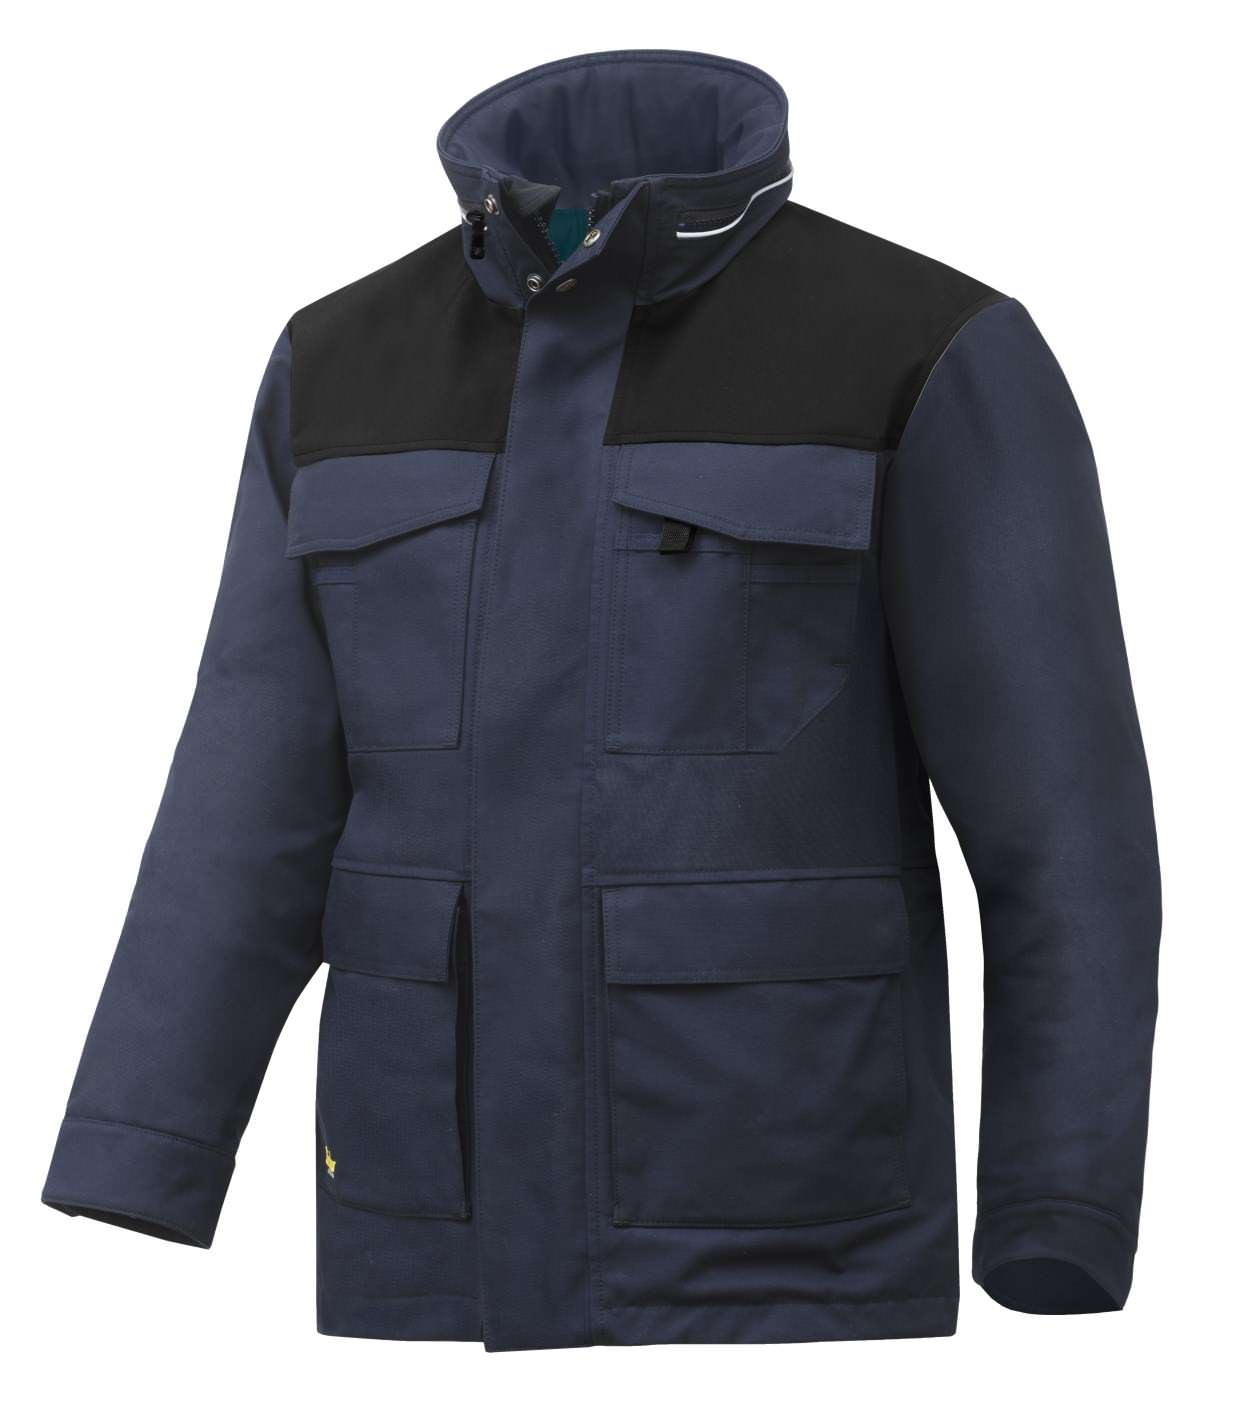 Snickers 1101 RuffWork, 37.5® Insulated Parka